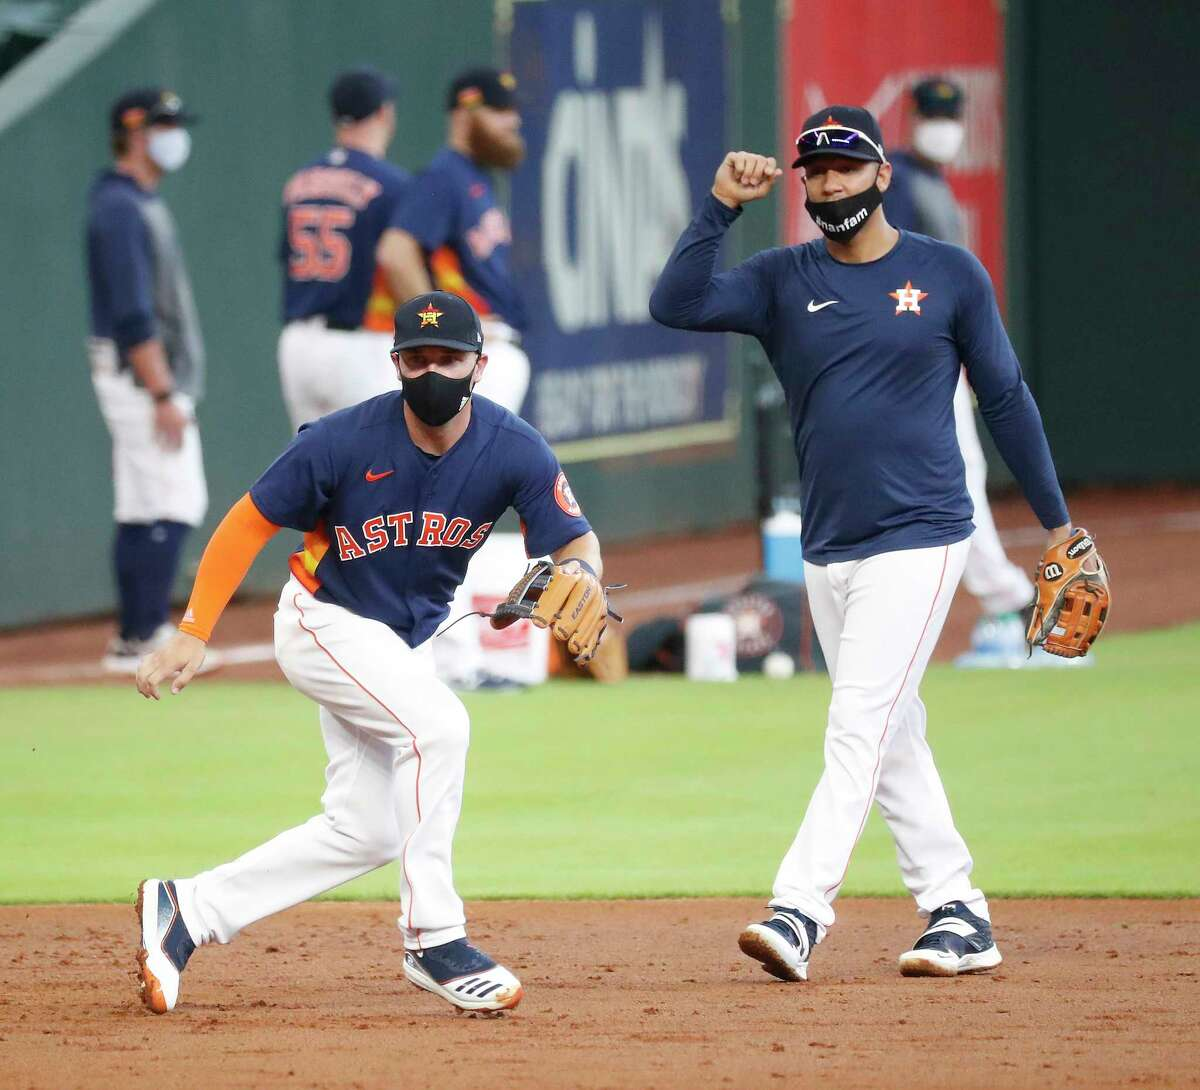 Houston Astros Alex Bregman and Yuli Gurriel work third base grounders during the Astros summer camp at Minute Maid Park, Friday, July 10, 2020, in Houston.